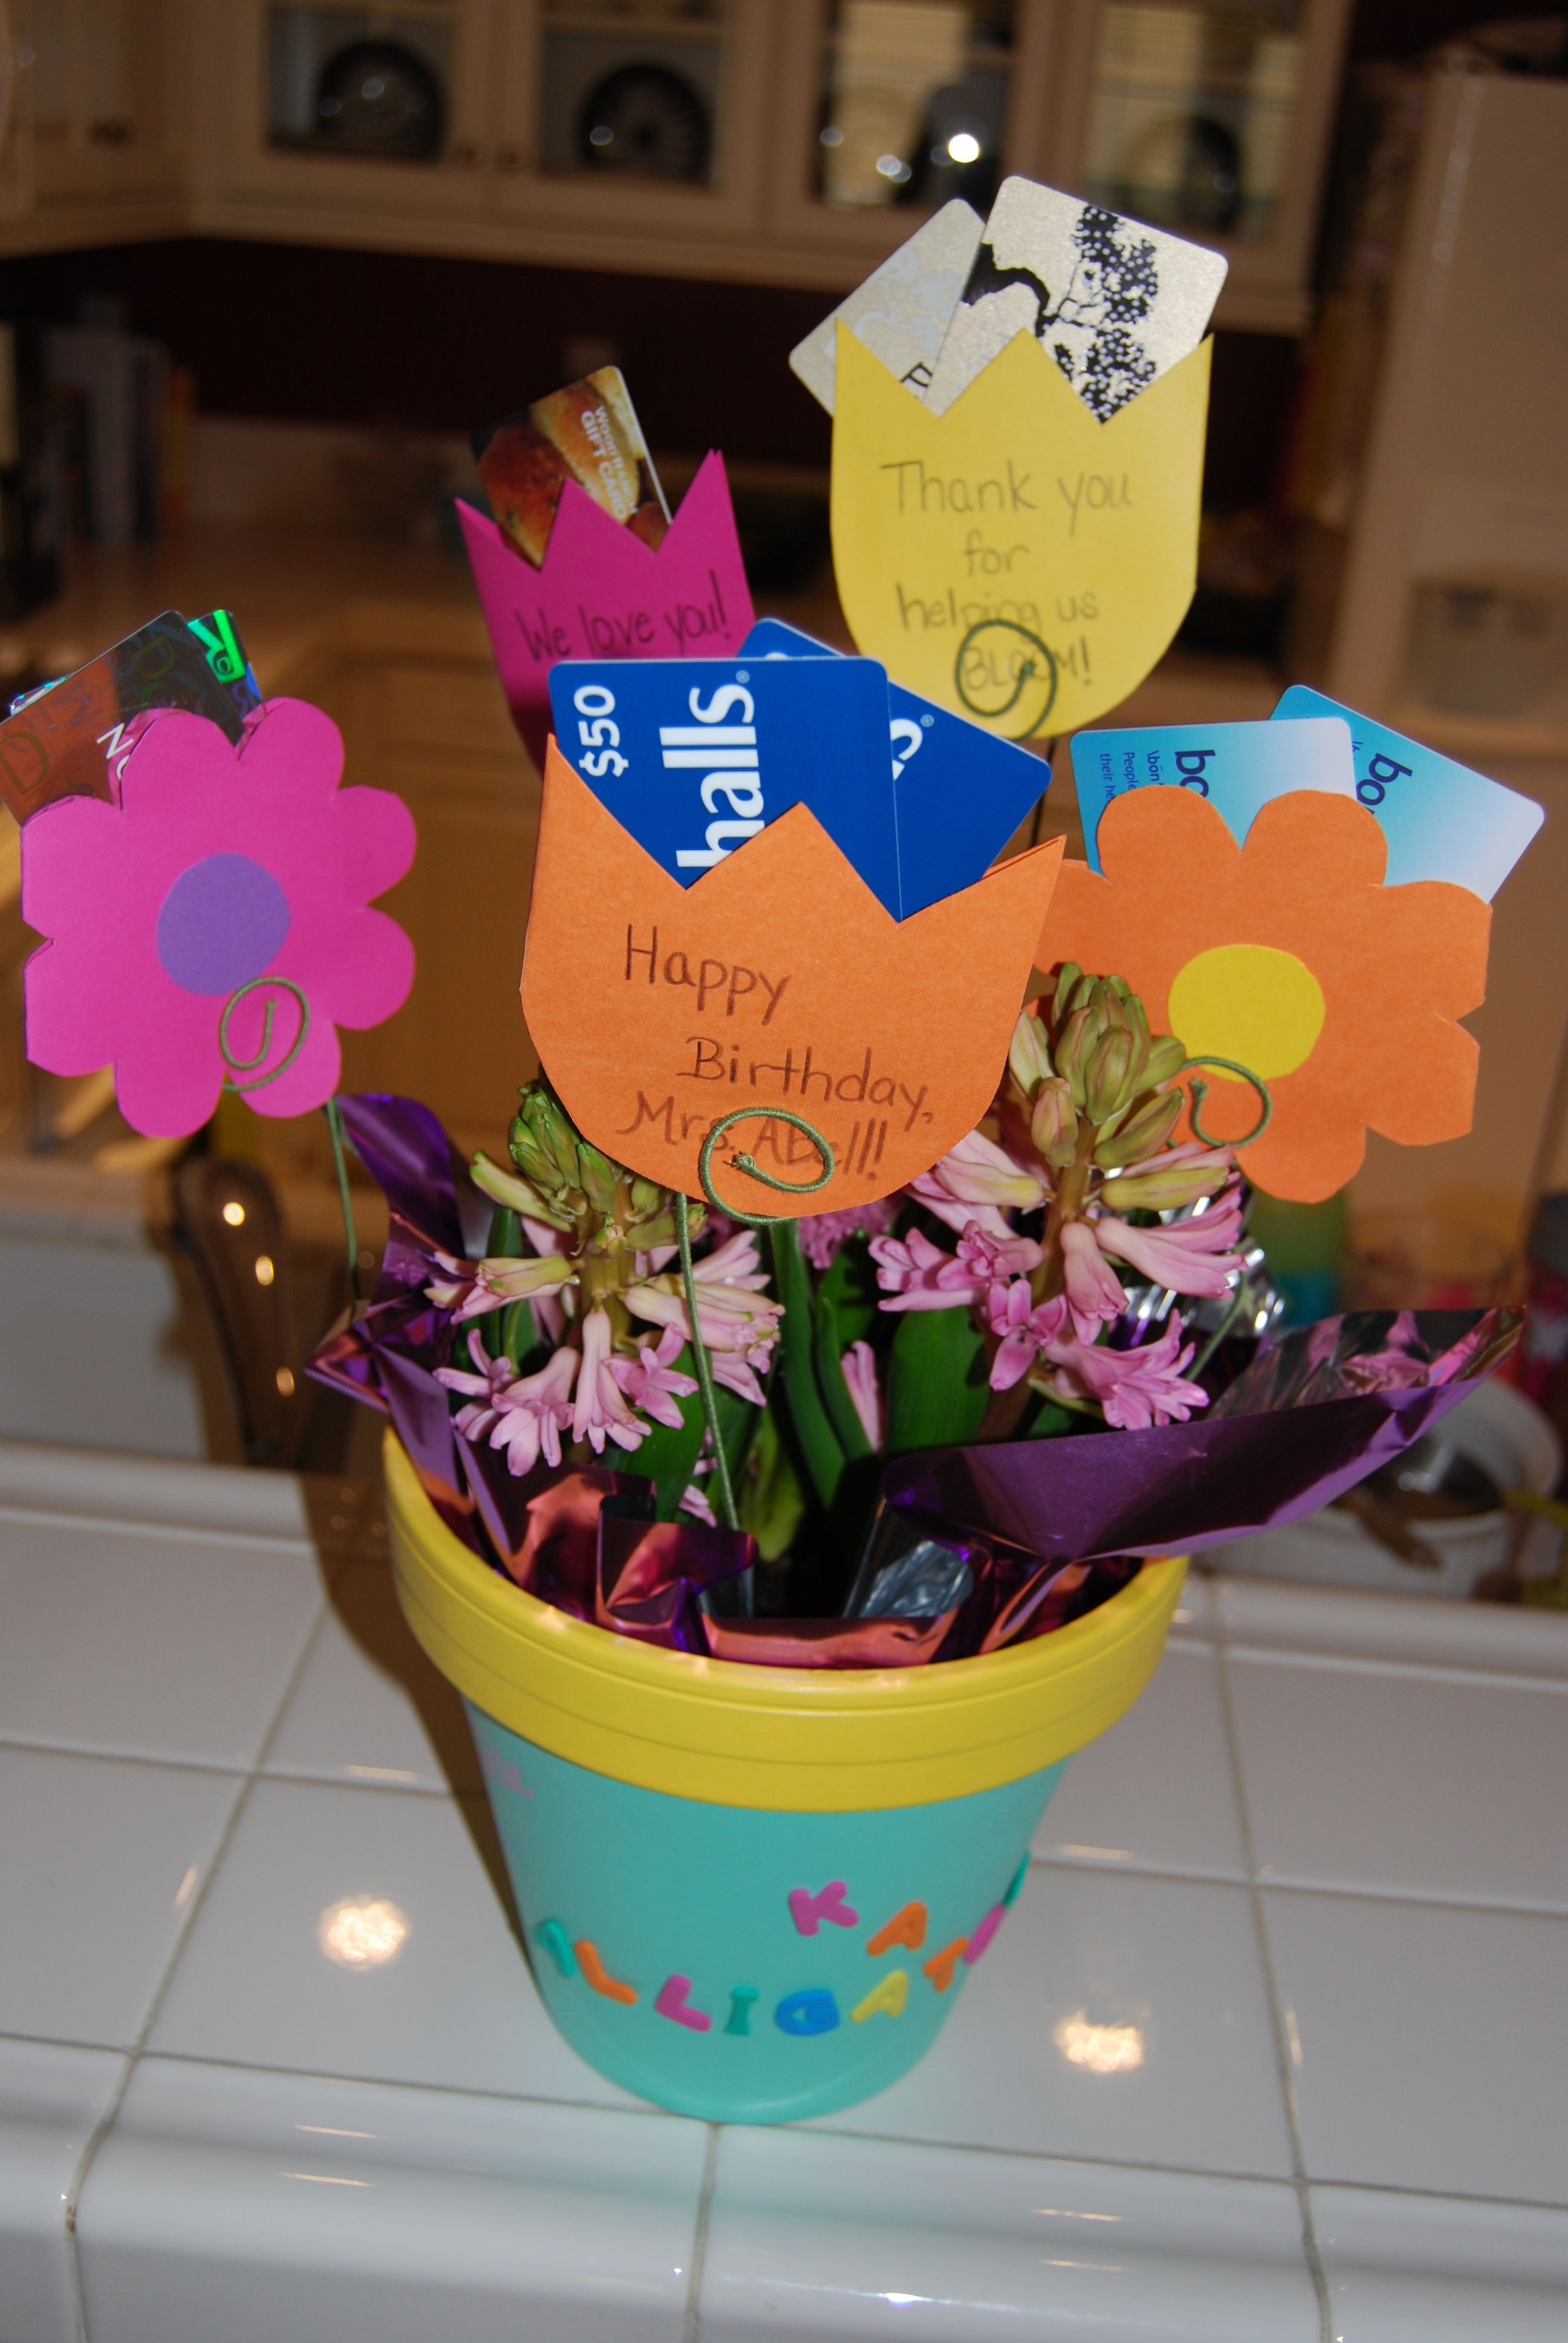 Gifts With Photos On Them Part - 45: Giving Tree - Great For A Motheru0027s Day Gift Birthday Ect. Make Flower Gift  Card Holders And Stick Them Into A Potted Plant.